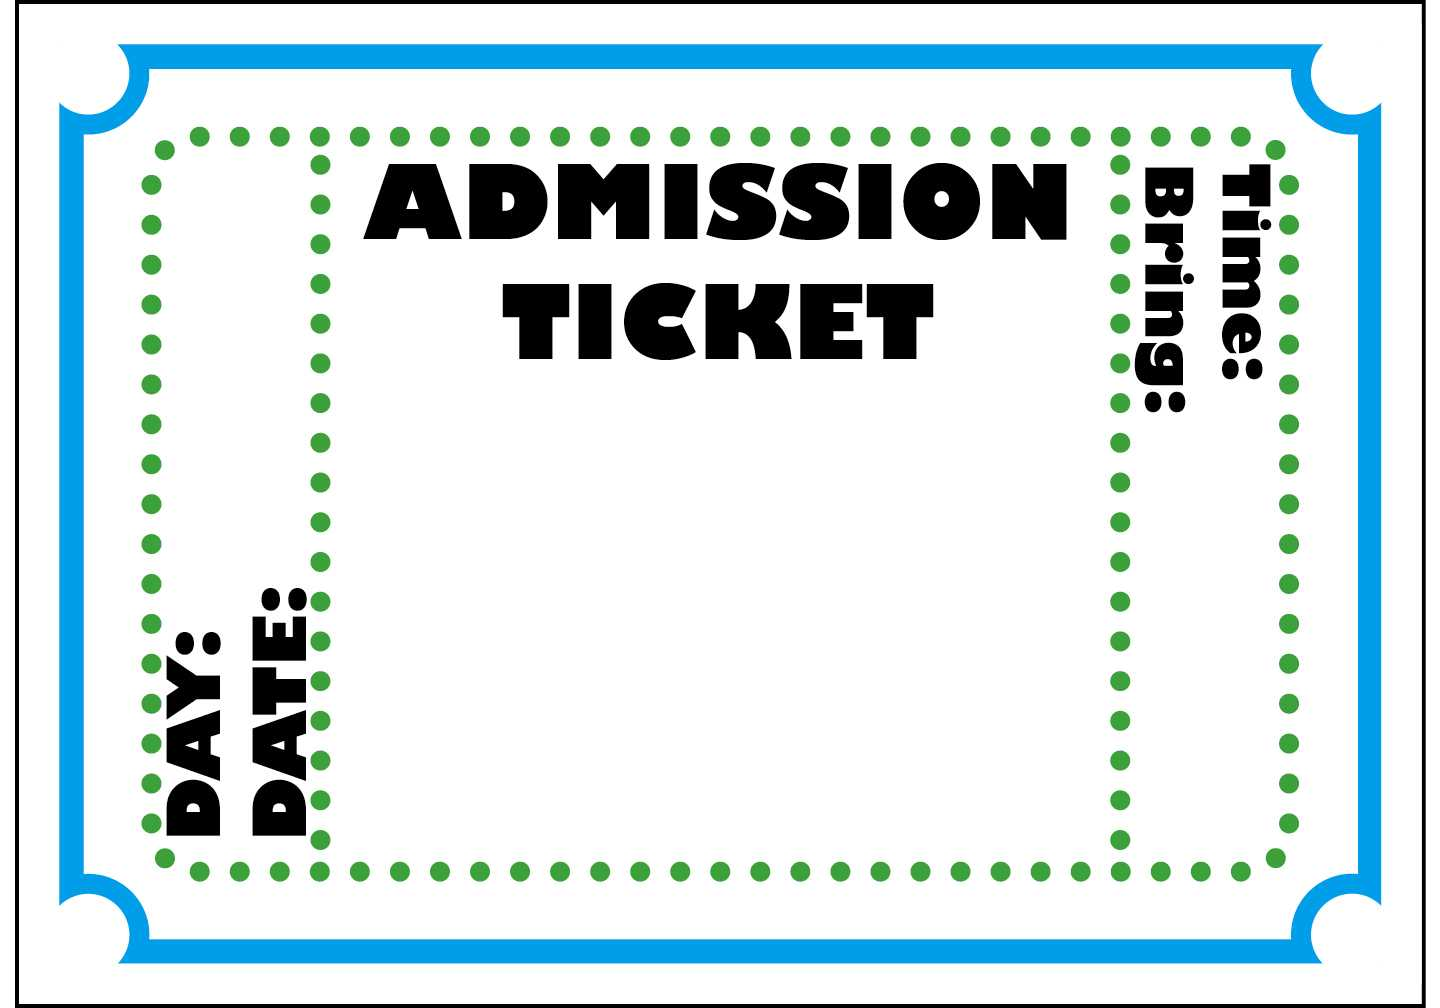 Free Blank Ticket Cliparts, Download Free Clip Art, Free Inside Blank Admission Ticket Template